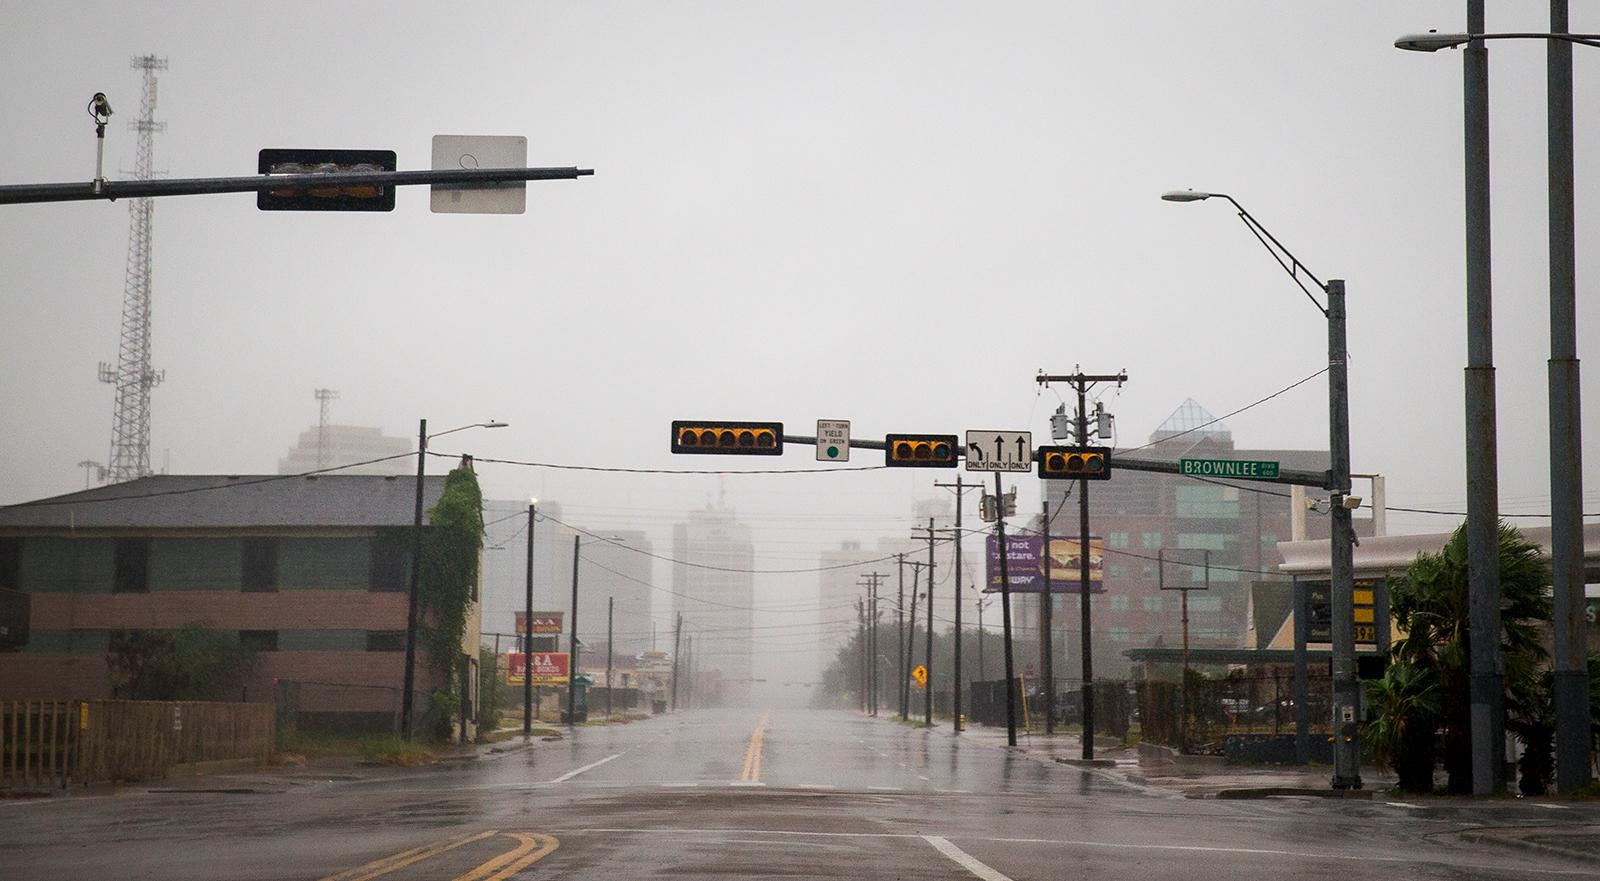 A street sits empty as Hurricane Harvey makes landfall in Corpus Christi, Texas, on Friday, Aug. 25, 2017. Hurricane Harvey smashed into Texas late Friday, lashing a wide swath of the Gulf Coast with strong winds and torrential rain from the fiercest hurricane to hit the U.S. in more than a decade.  (Nick Wagner/Austin American-Statesman via AP)